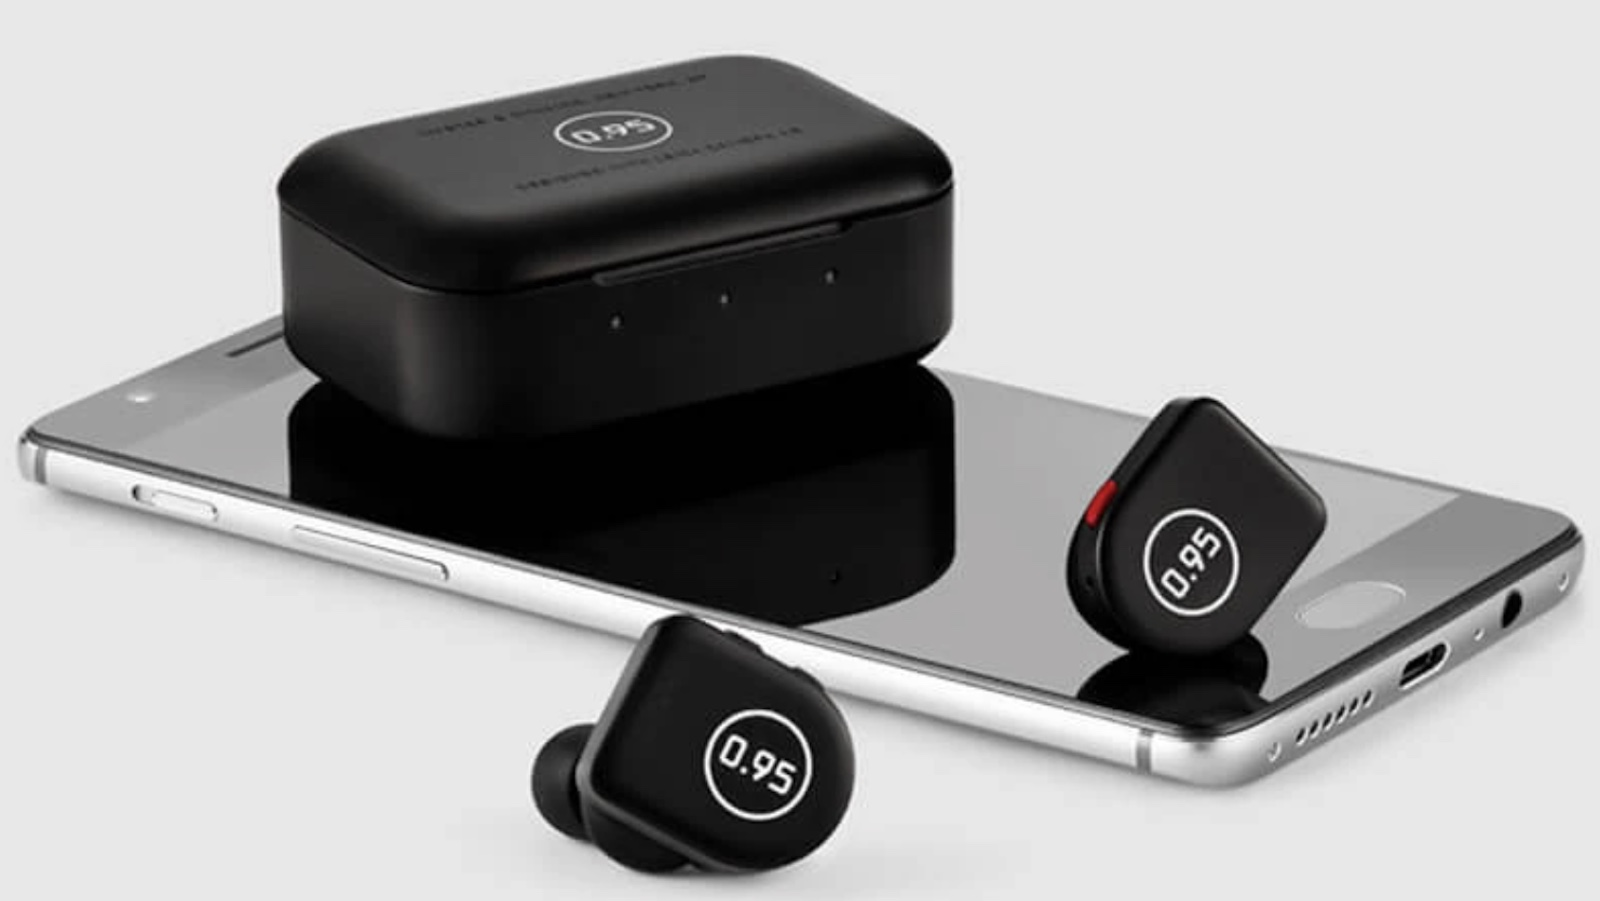 Master & Dynamic MW07 PLUS for 0.95 Durable Wireless Earphones are water resistant